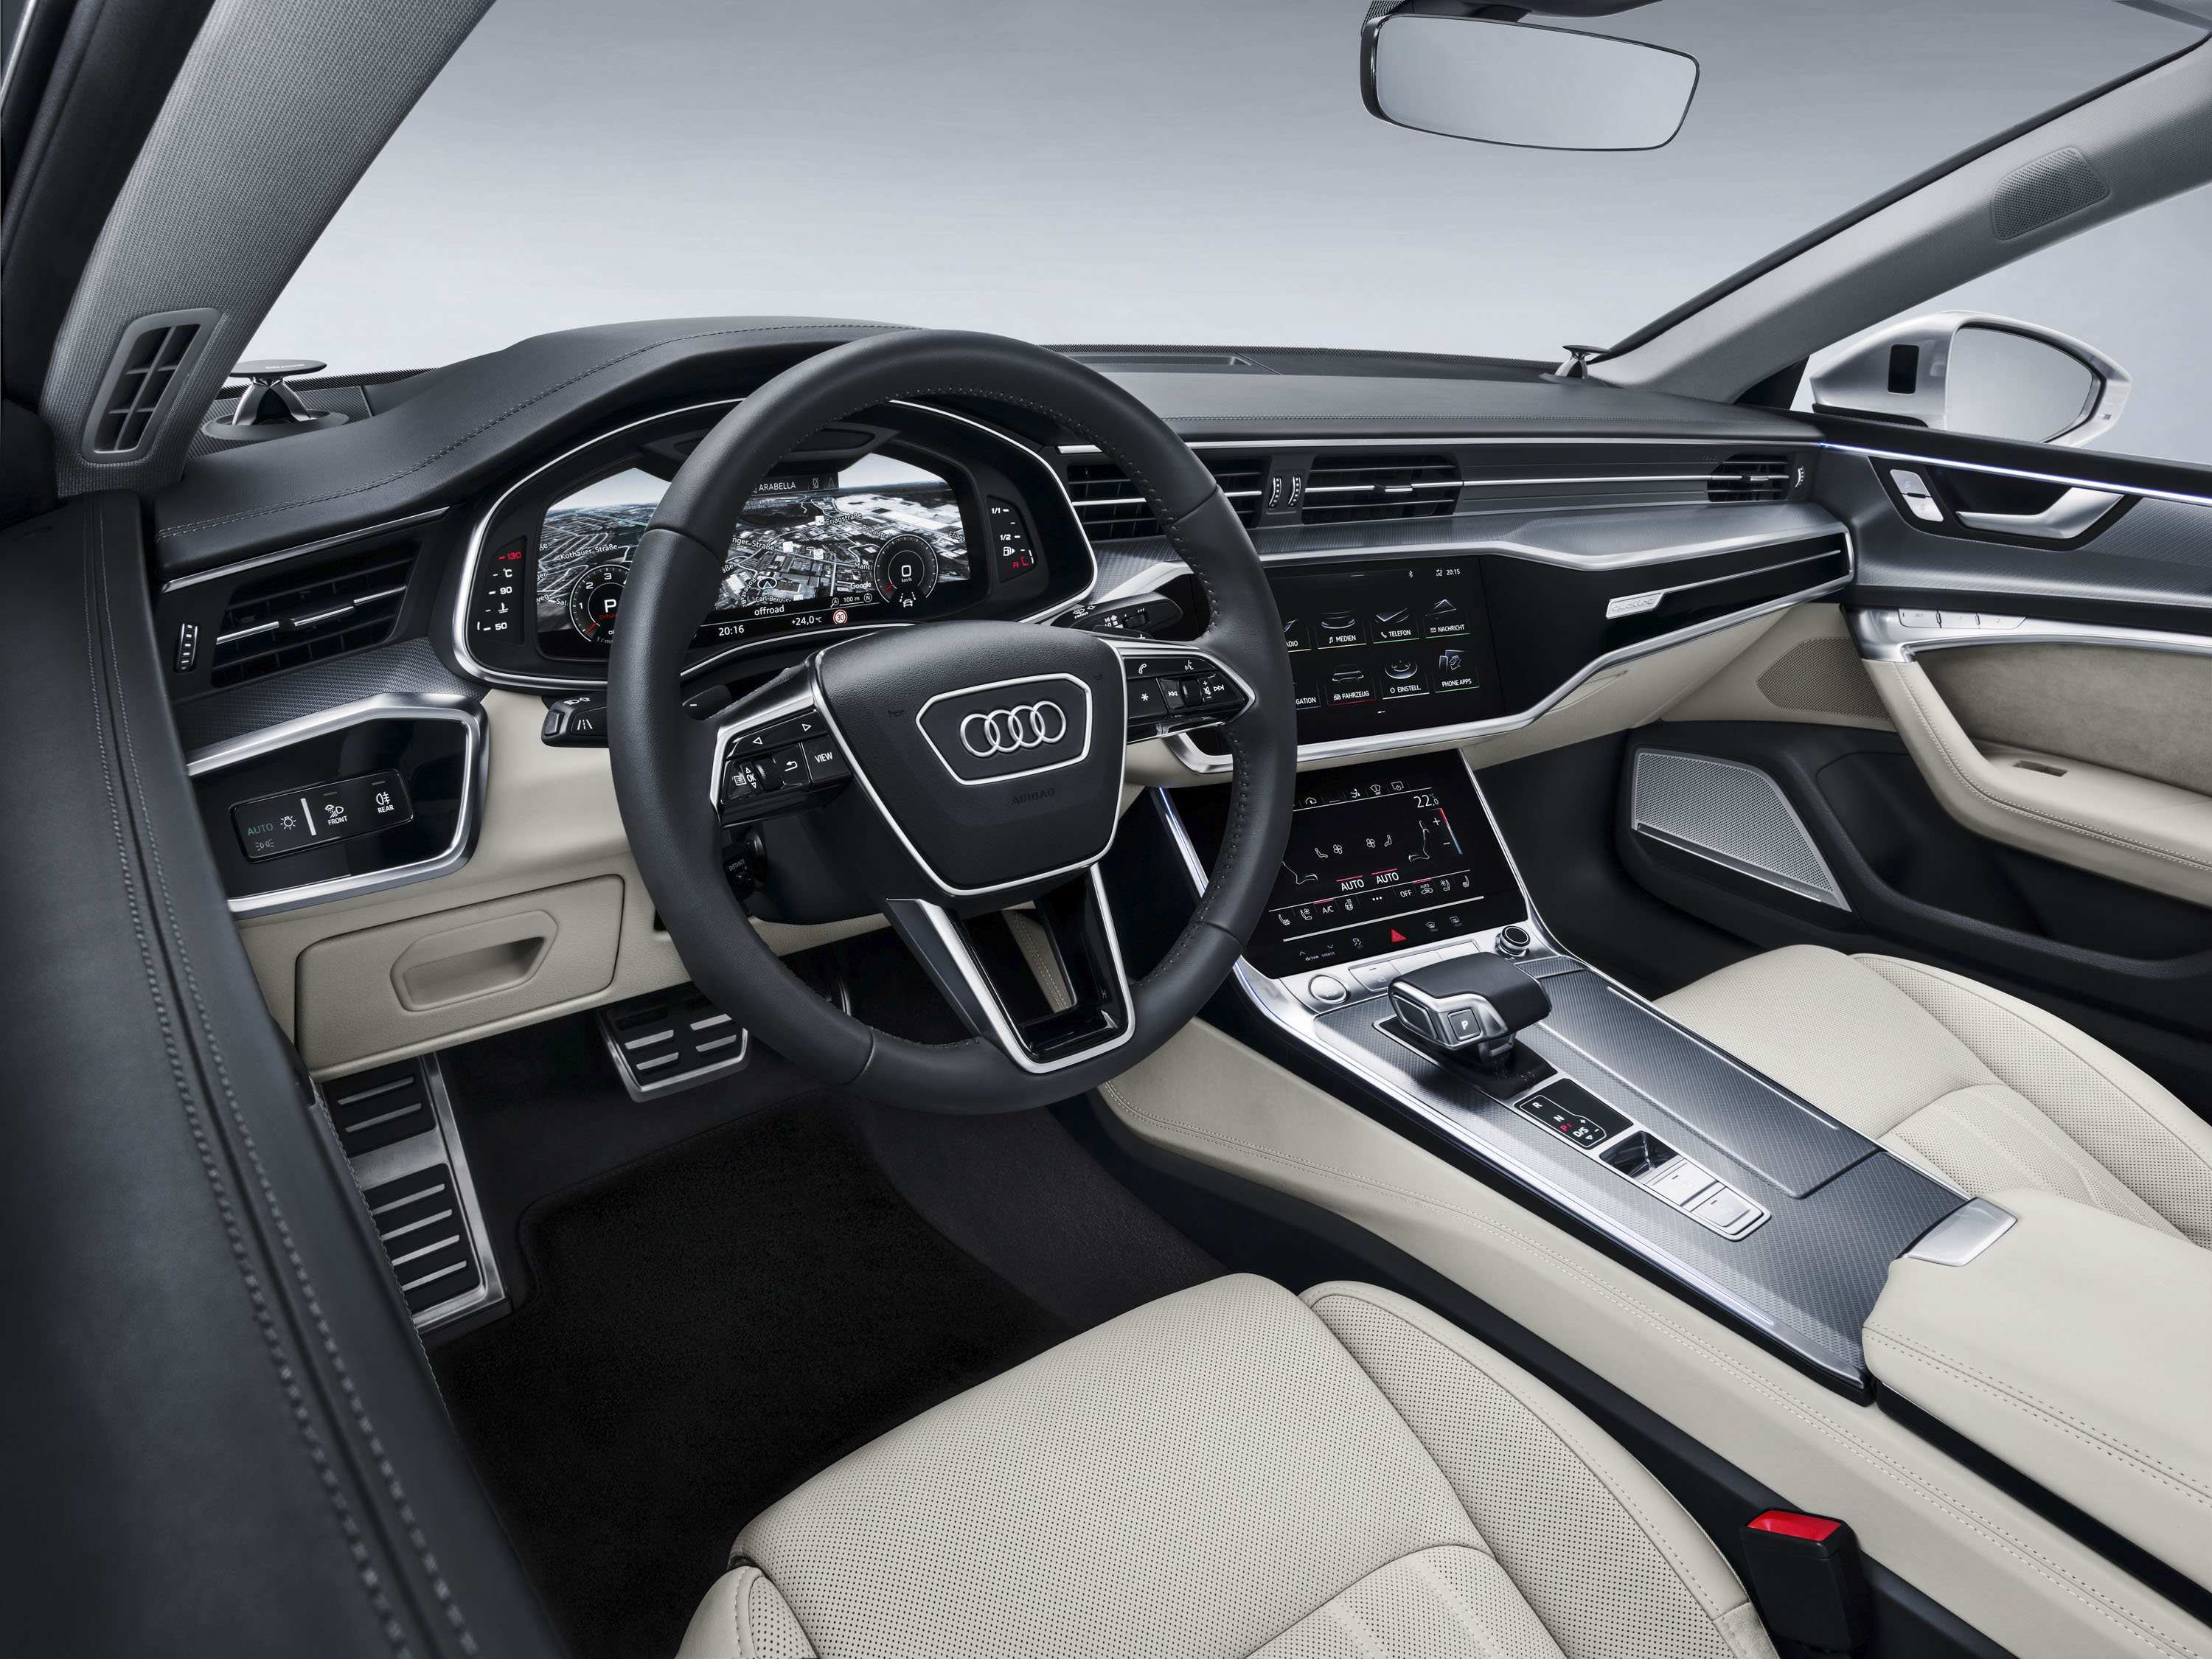 33 Best Review Best A6 Audi 2019 Interior Rumors New Review for Best A6 Audi 2019 Interior Rumors